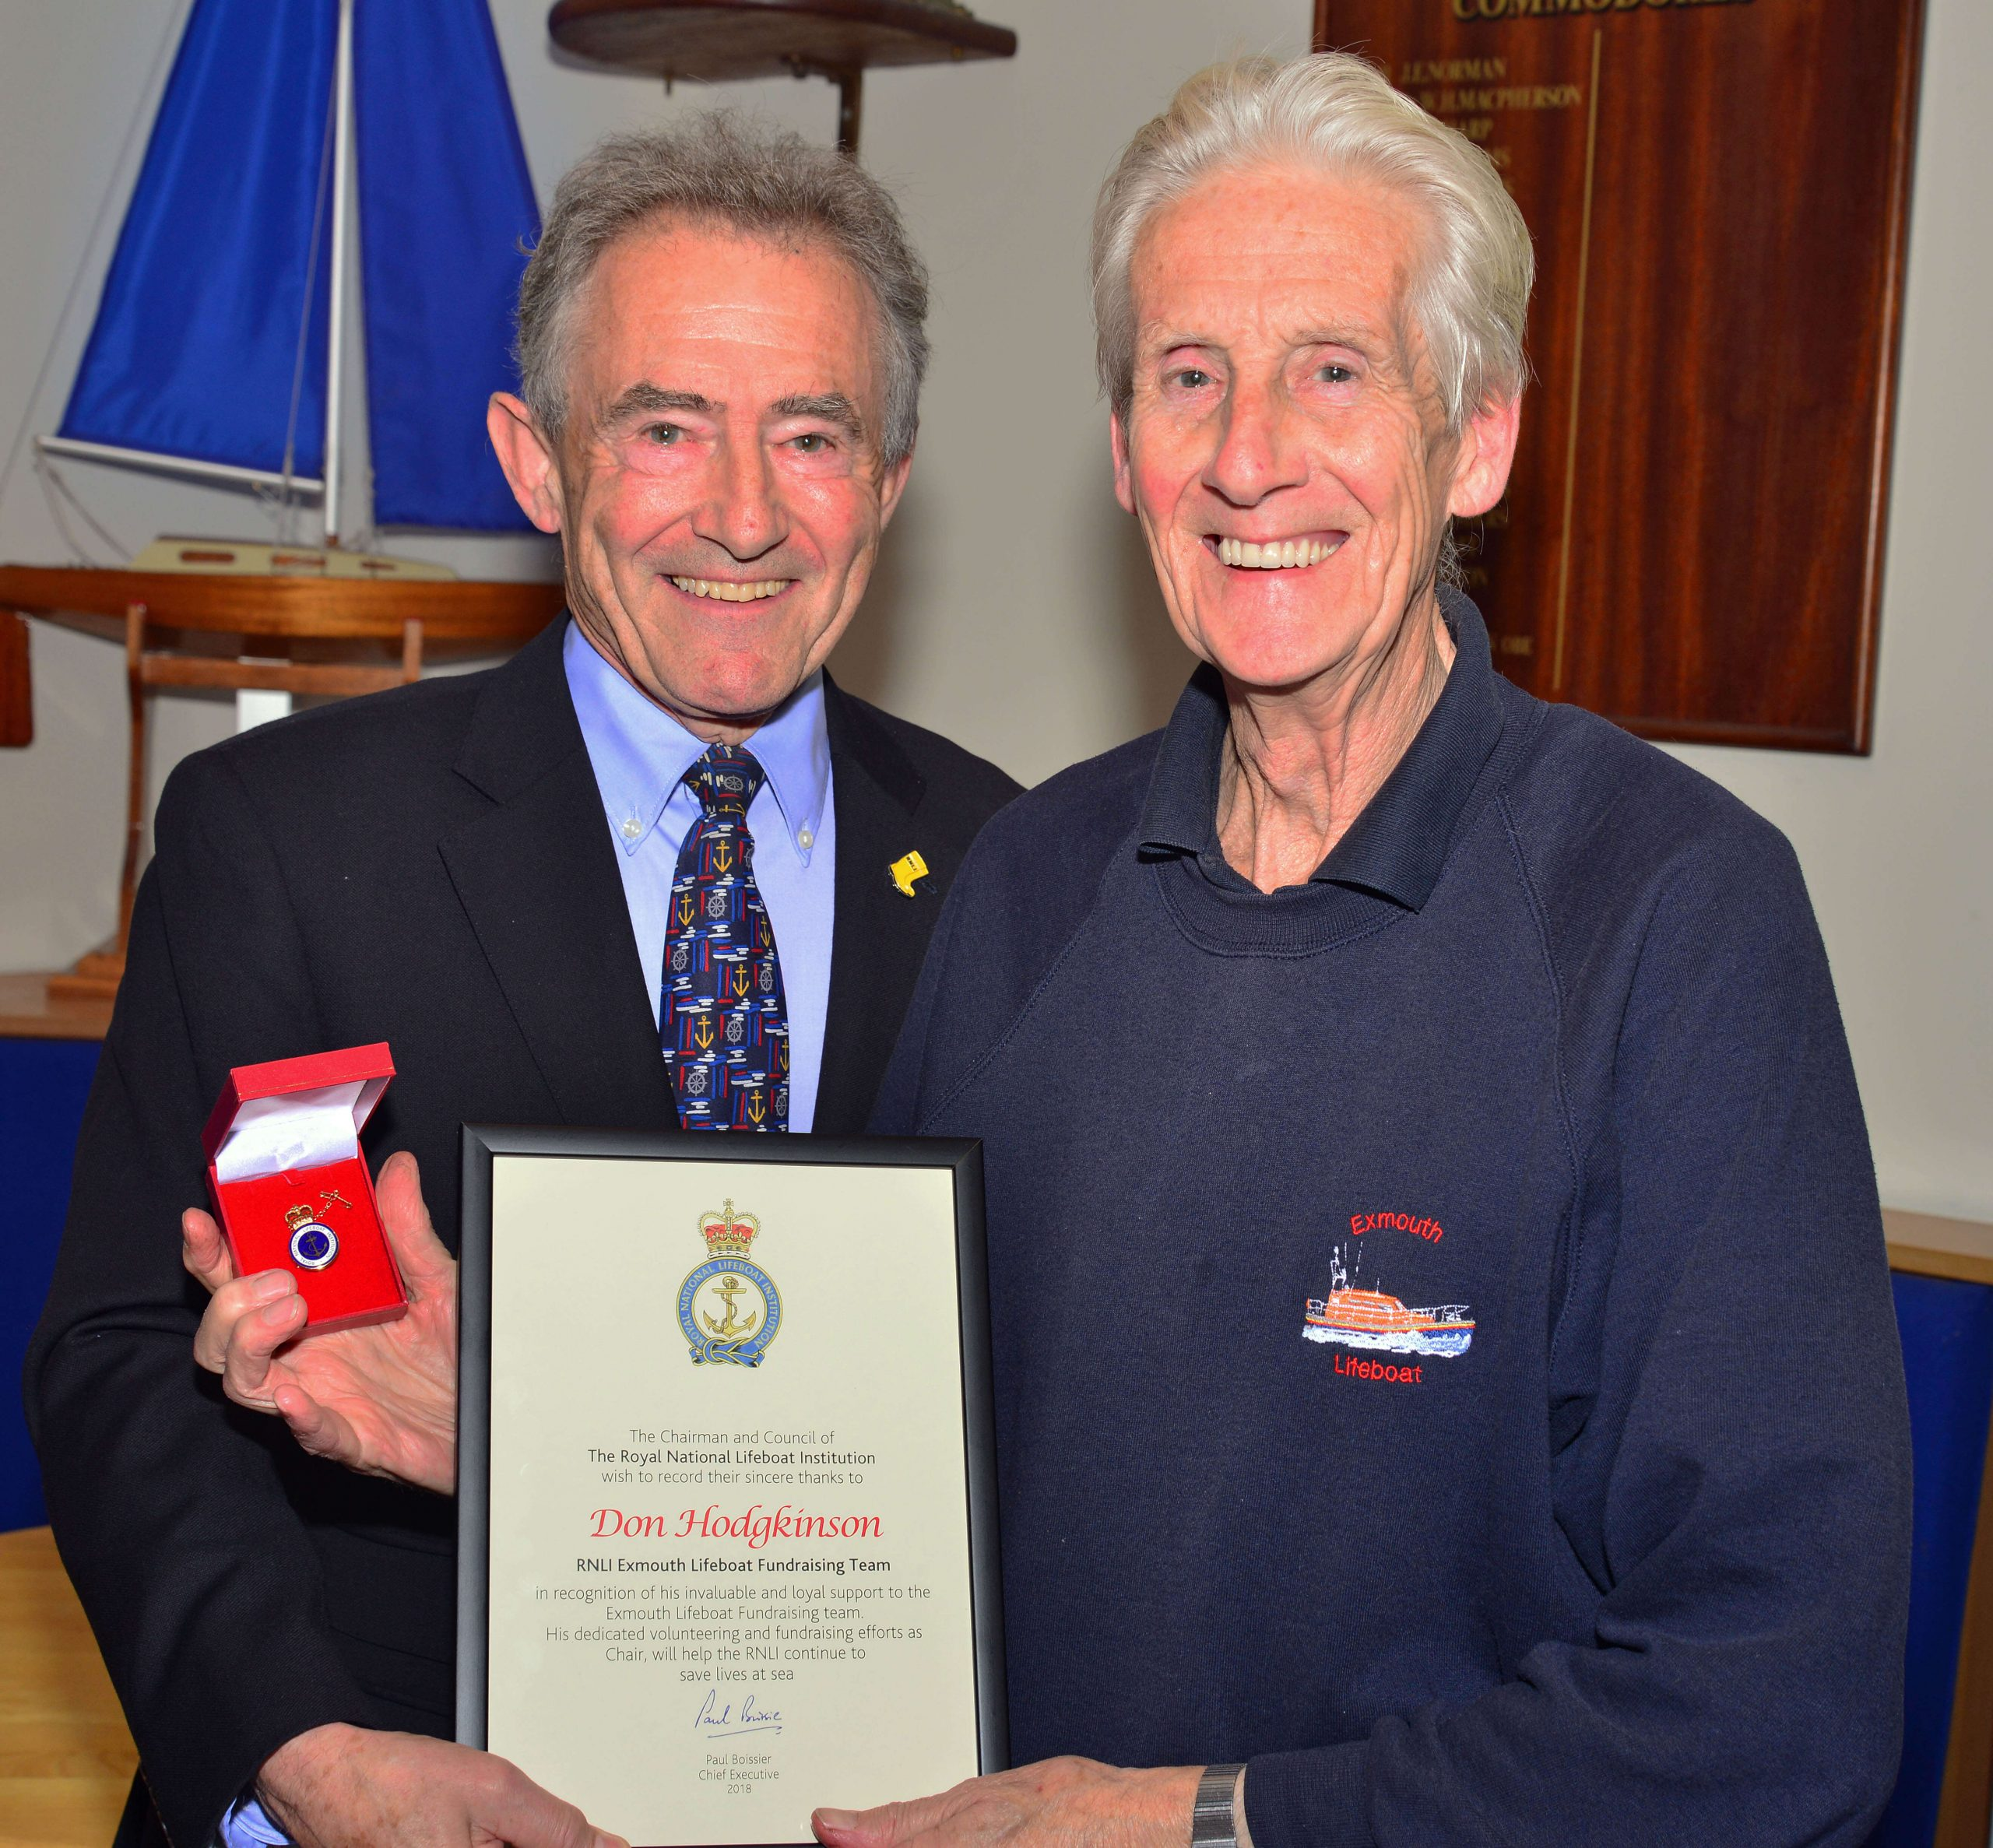 Exmouth RNLI volunteer Don Hodgkinson receiving his 20-year badge and certificate from former RNLI chairman Charles Hunter-Pease in 2018. Image: RNLI